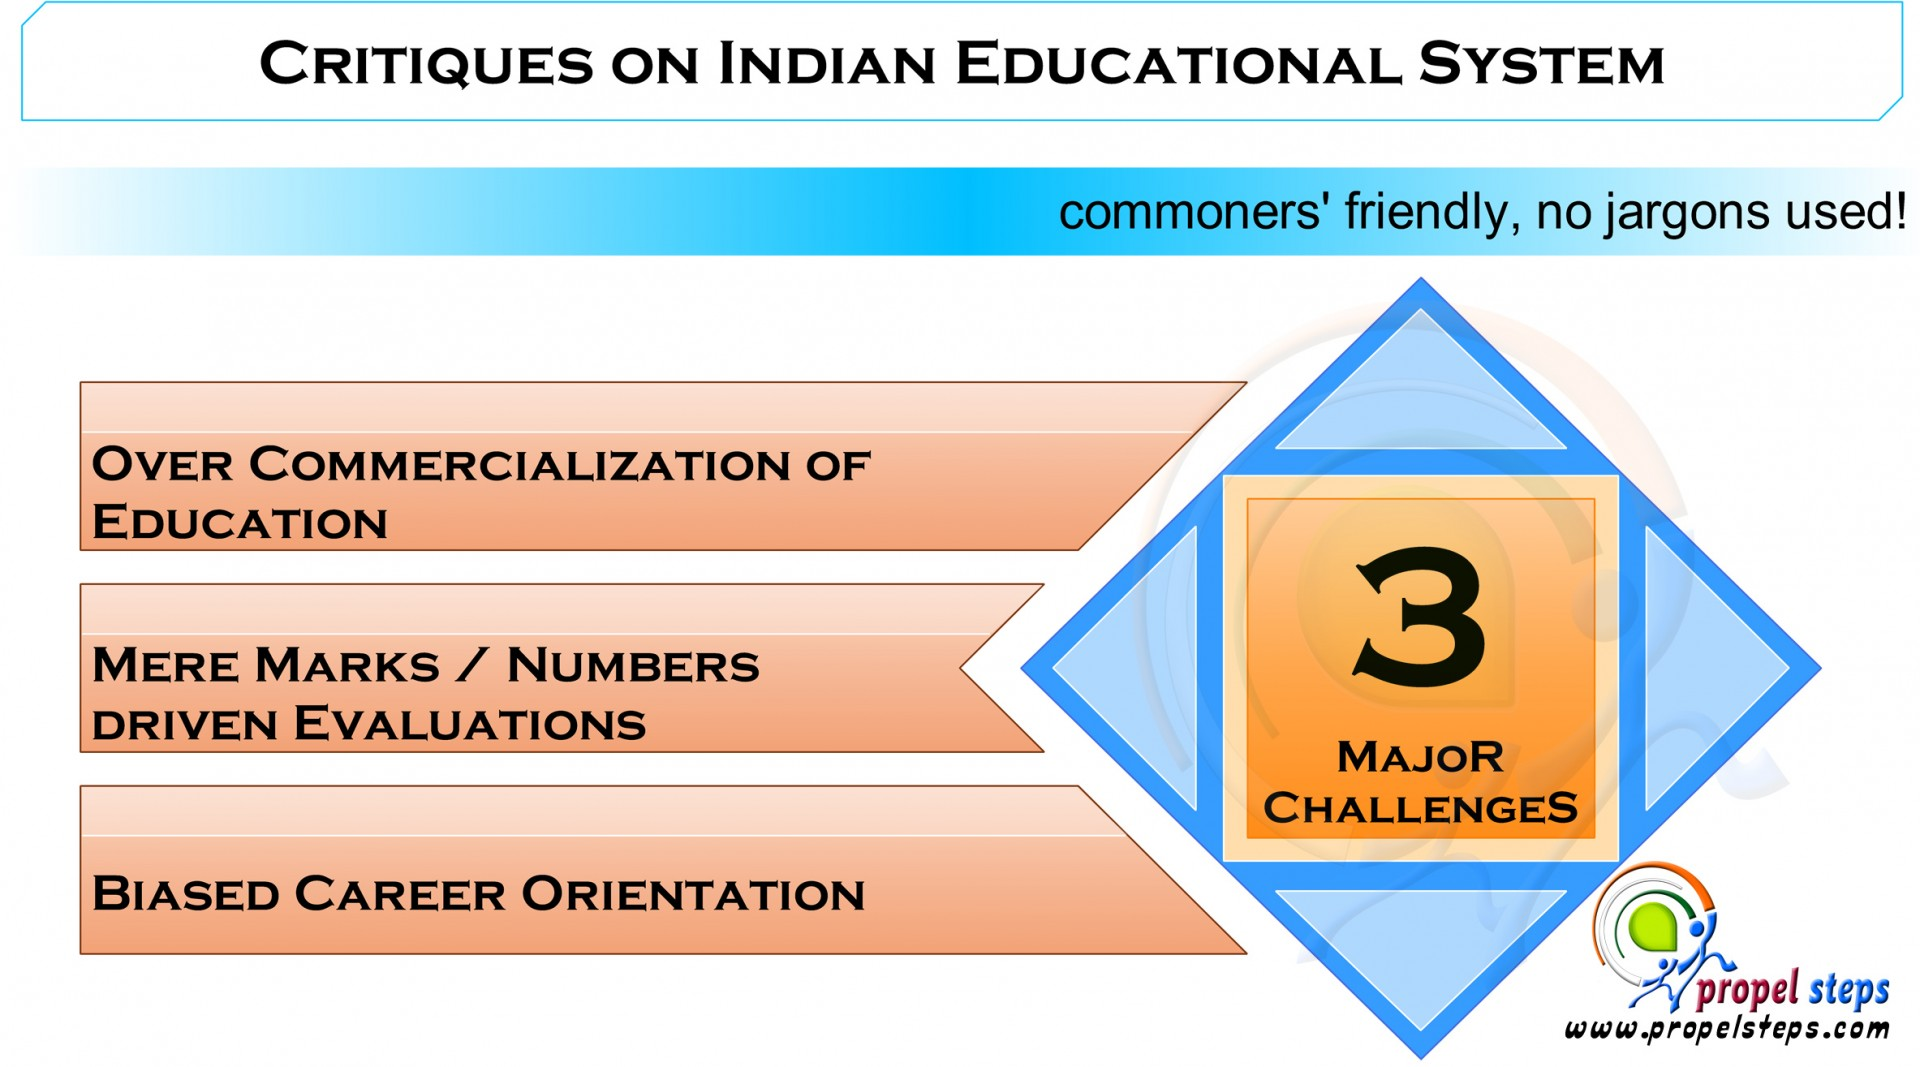 001 Essay On Education System In India And Abroad Research Paper Critiques Magnificent 1920